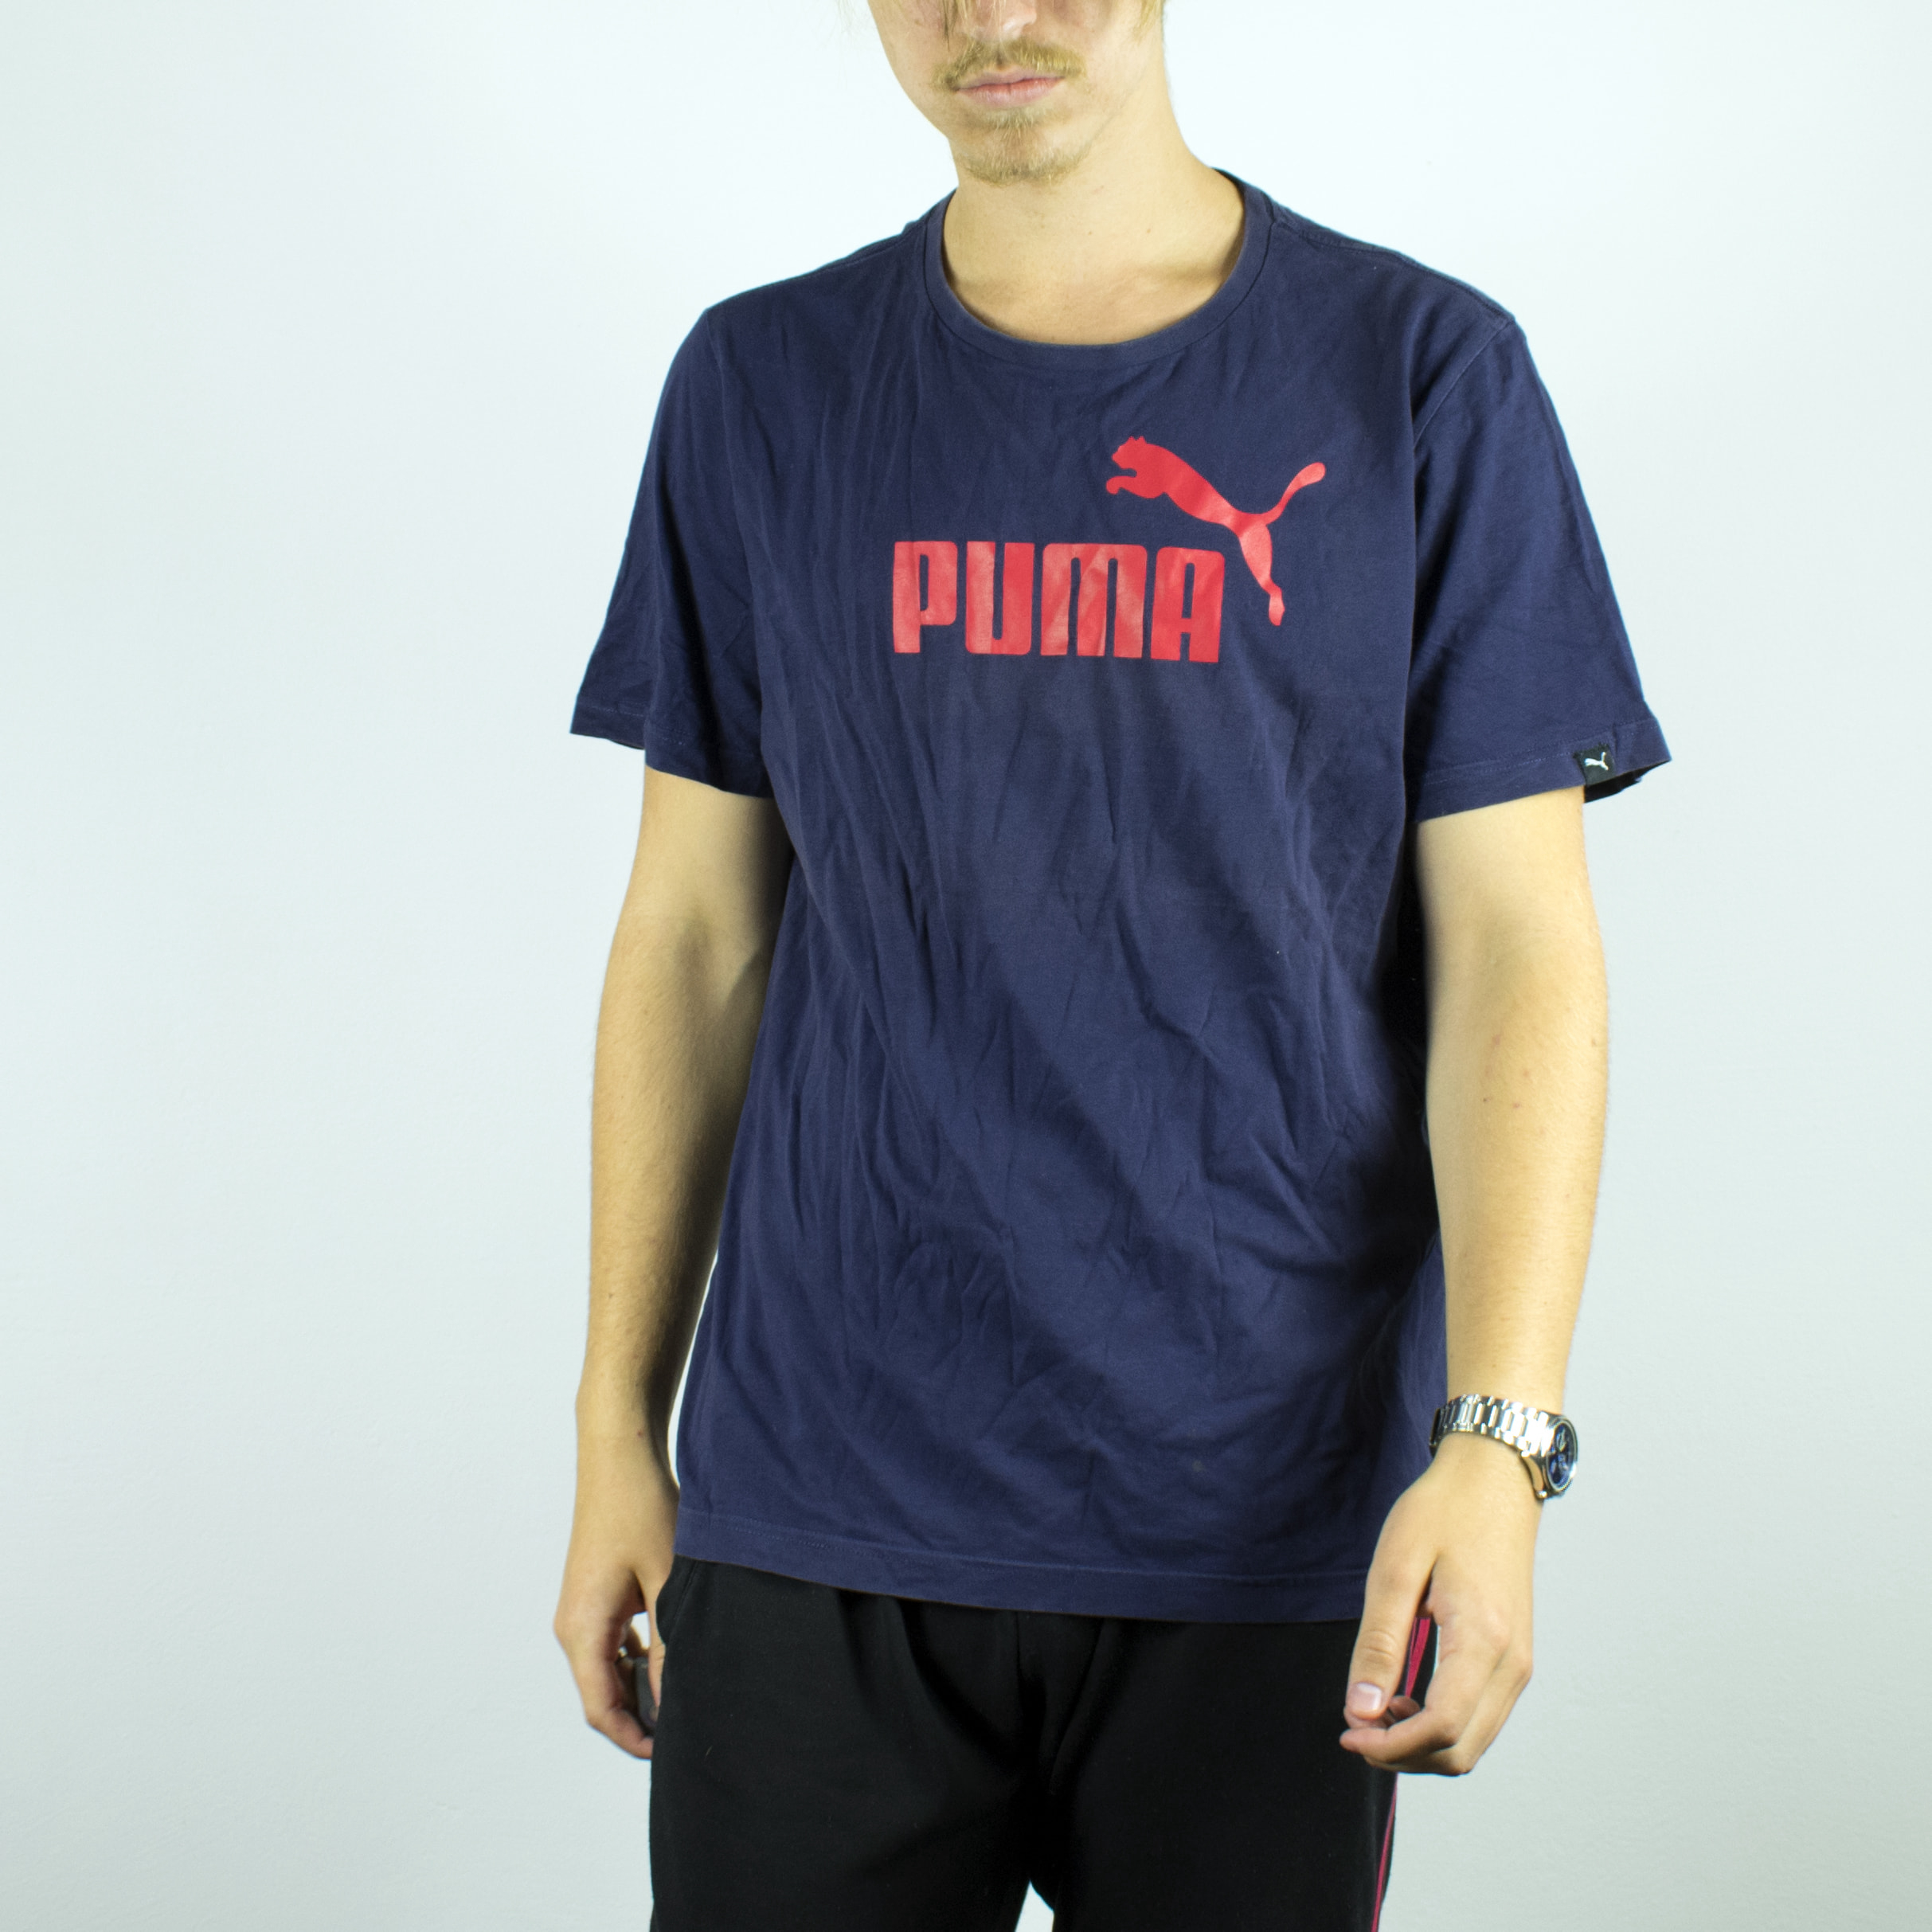 Unisex Vintage Puma t-shirt in navy blue has a big spellout on the front size M/L